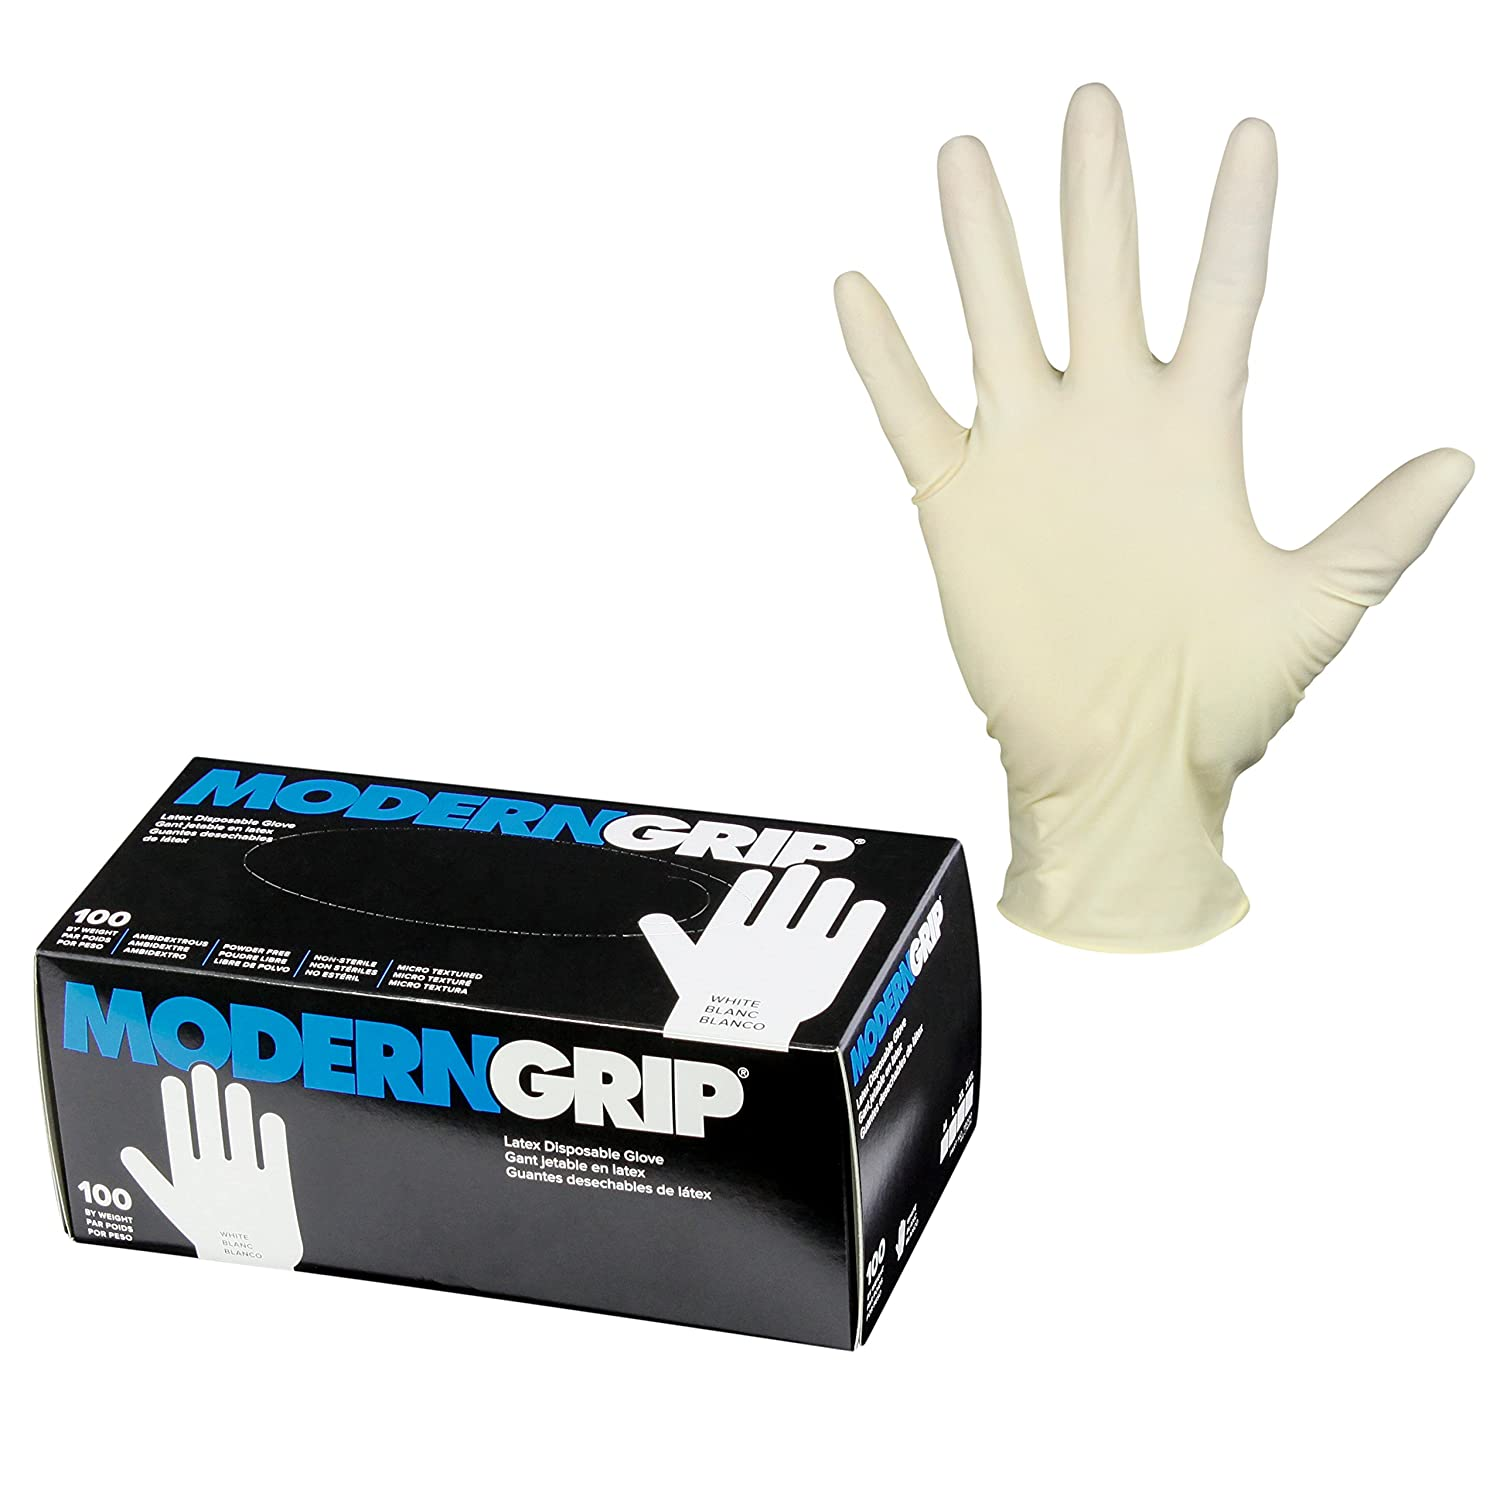 Modern Grip 19000-L Latex 9 25% OFF Heavy Disposable Thickness SALENEW very popular! mil Duty